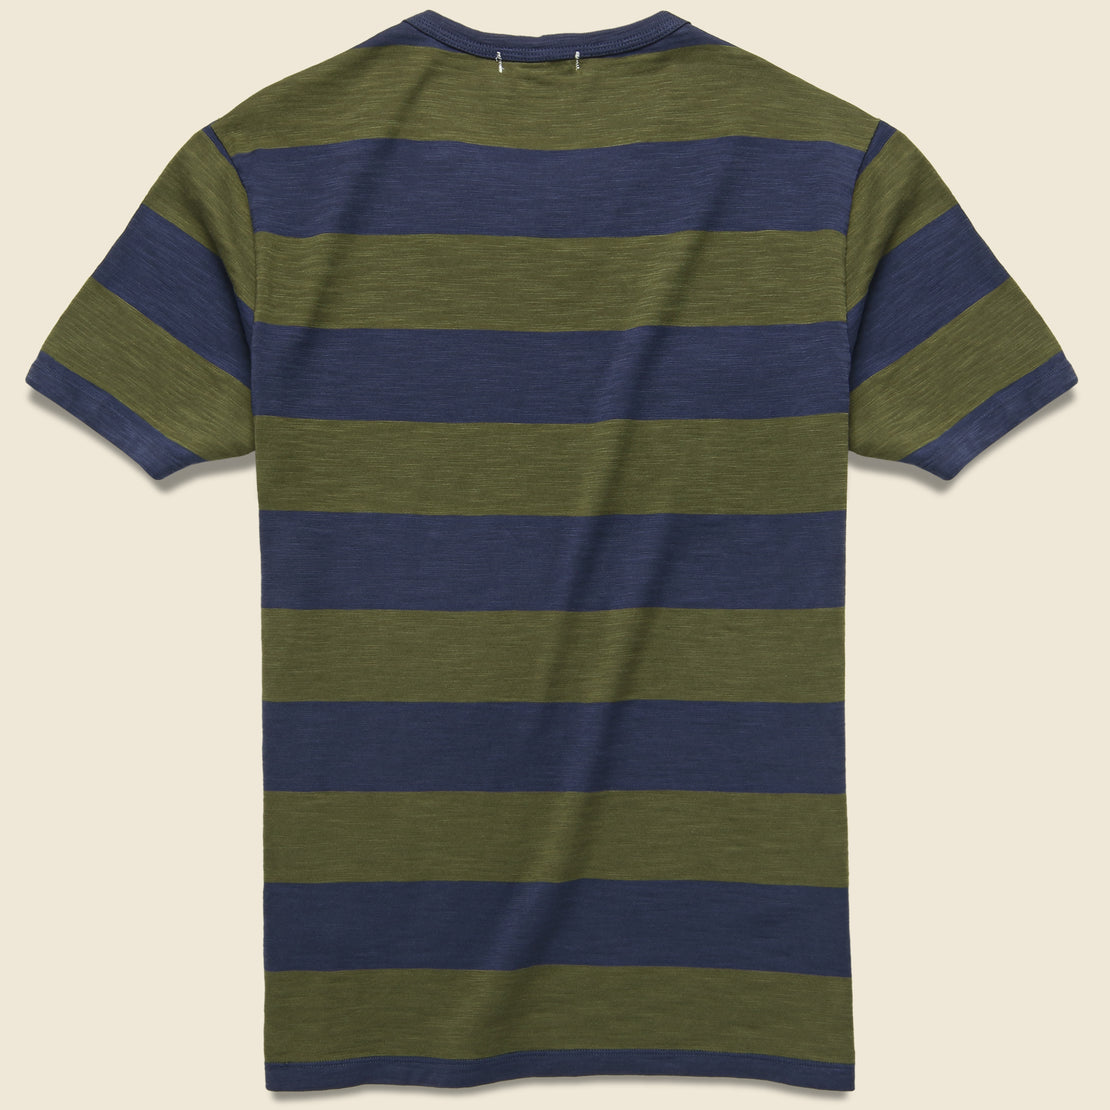 Wide Striped Pocket Tee - Navy/Military Green